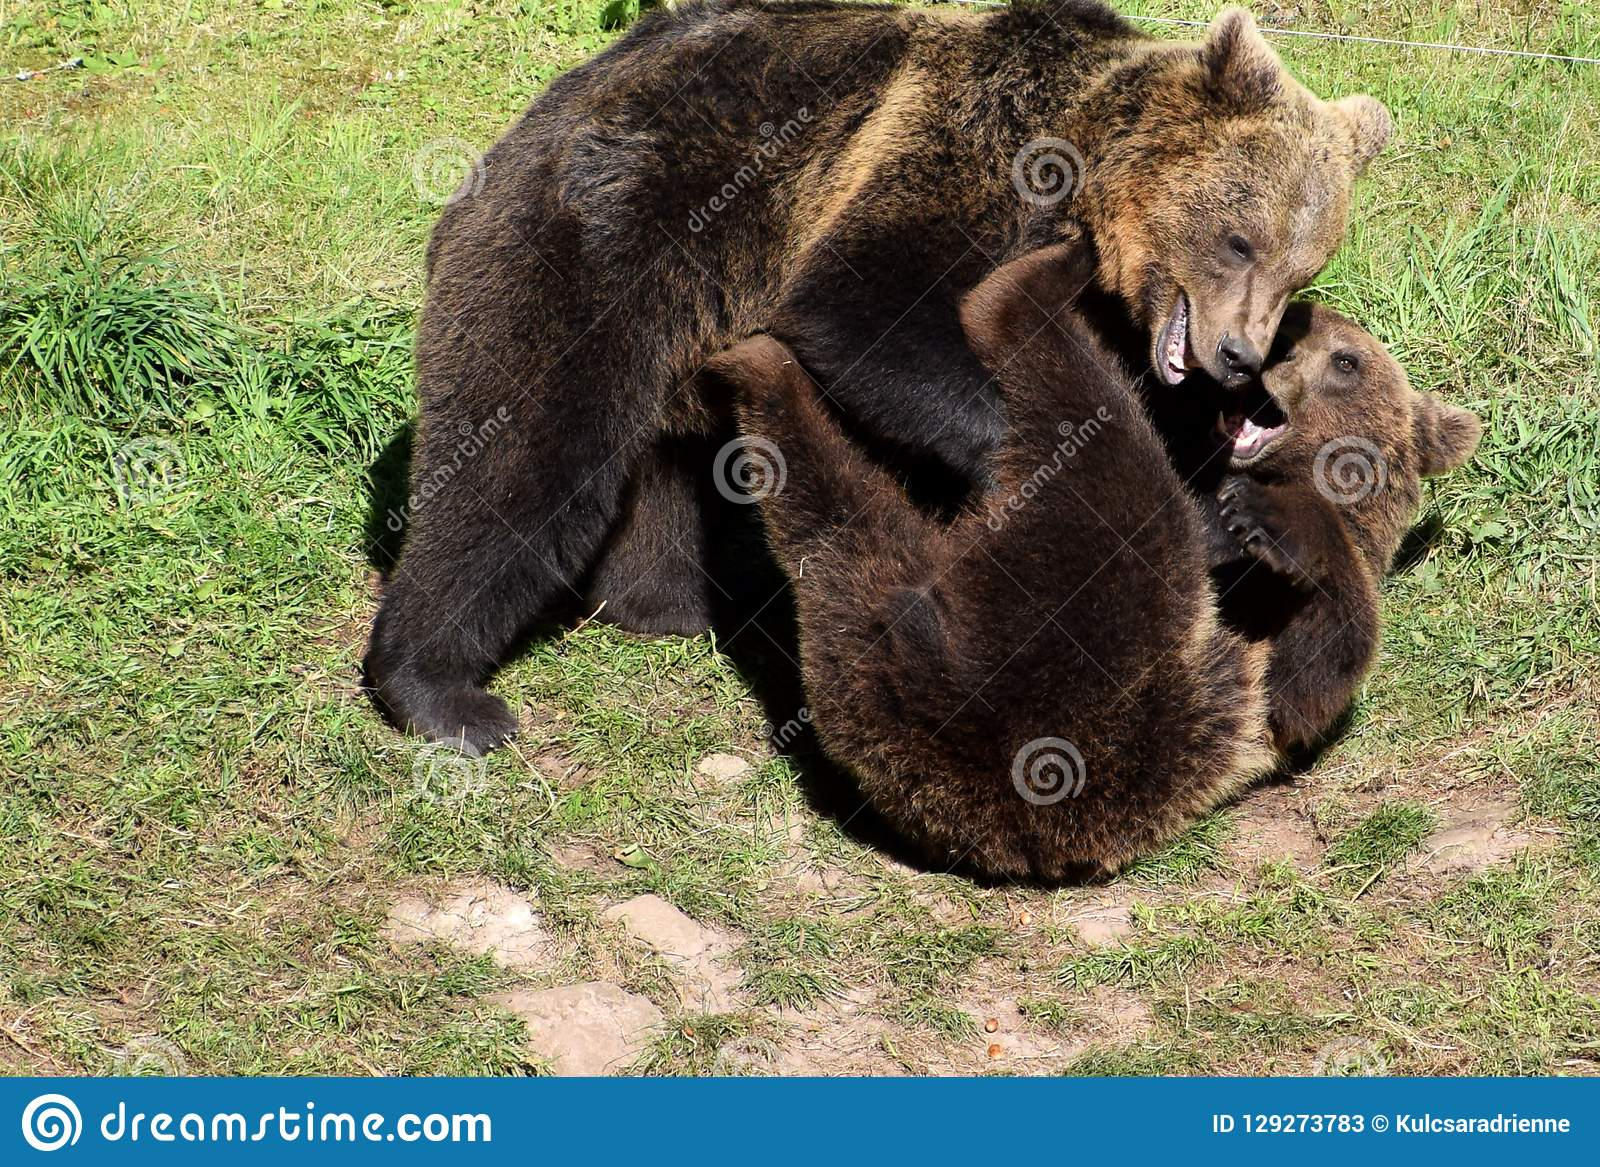 Two young brown bears playing